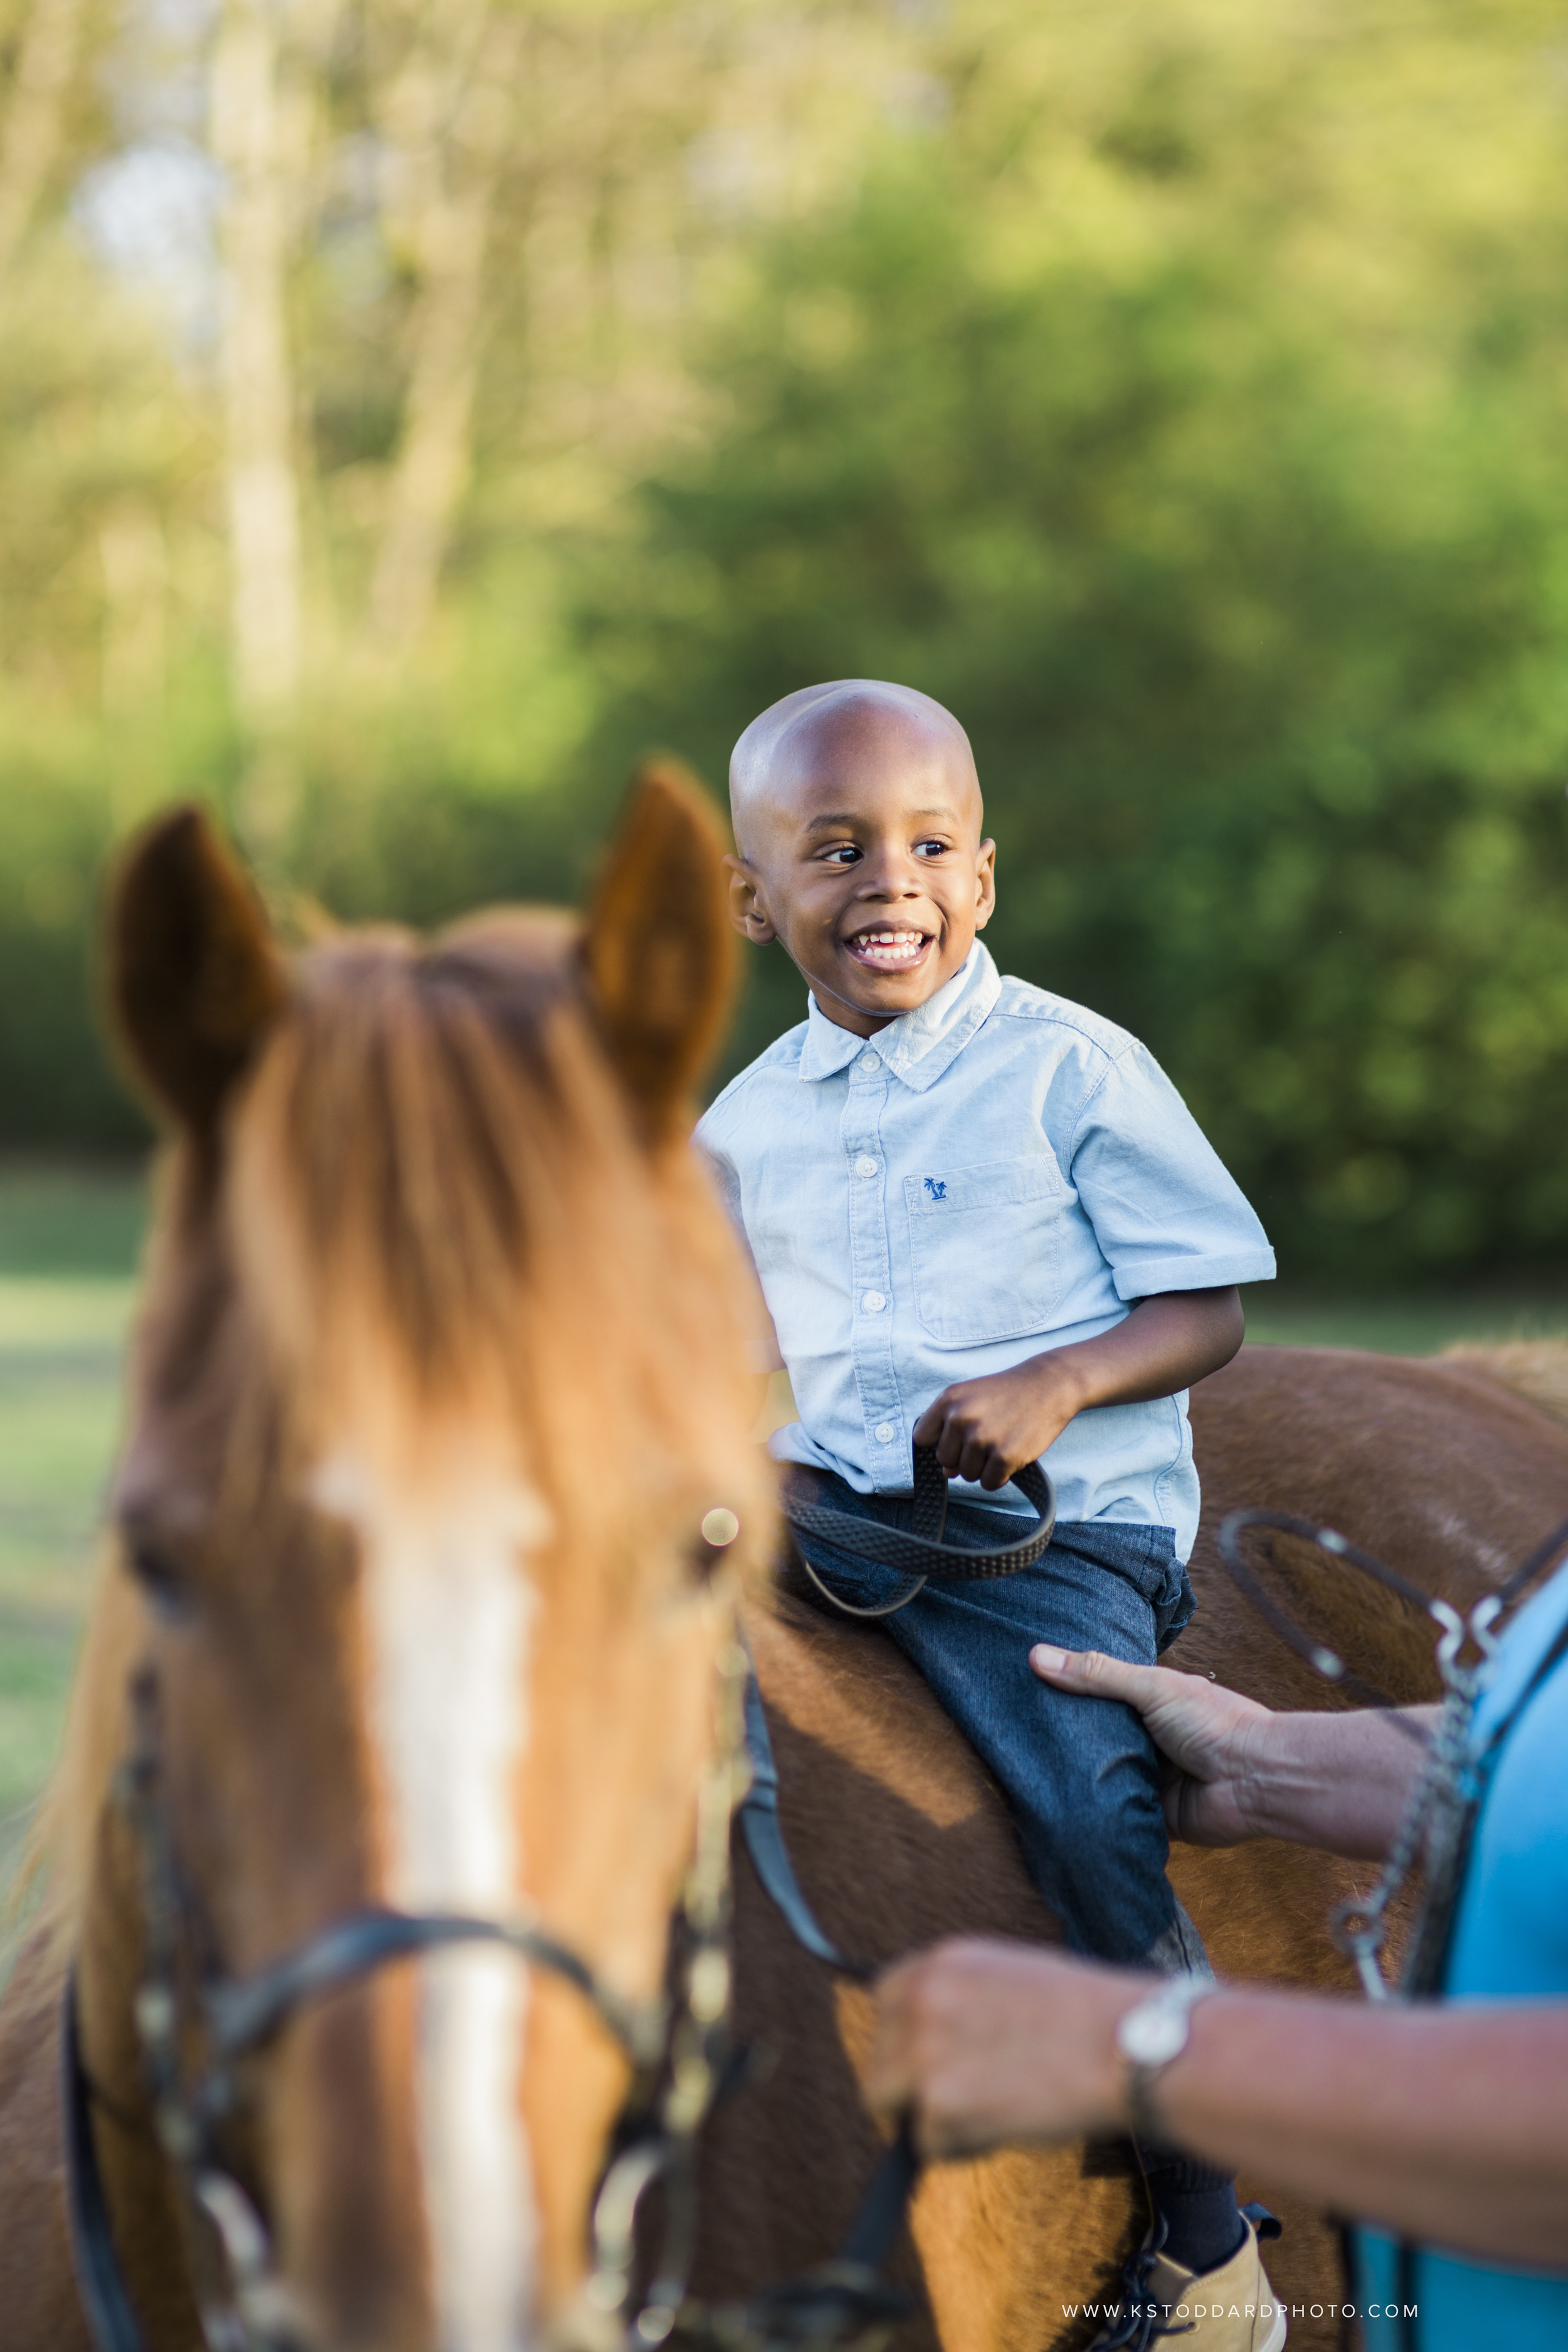 K'meil and Family - St. Jude Children's Research Hospital - Memphis - K. Stoddard Photography 010.jpg